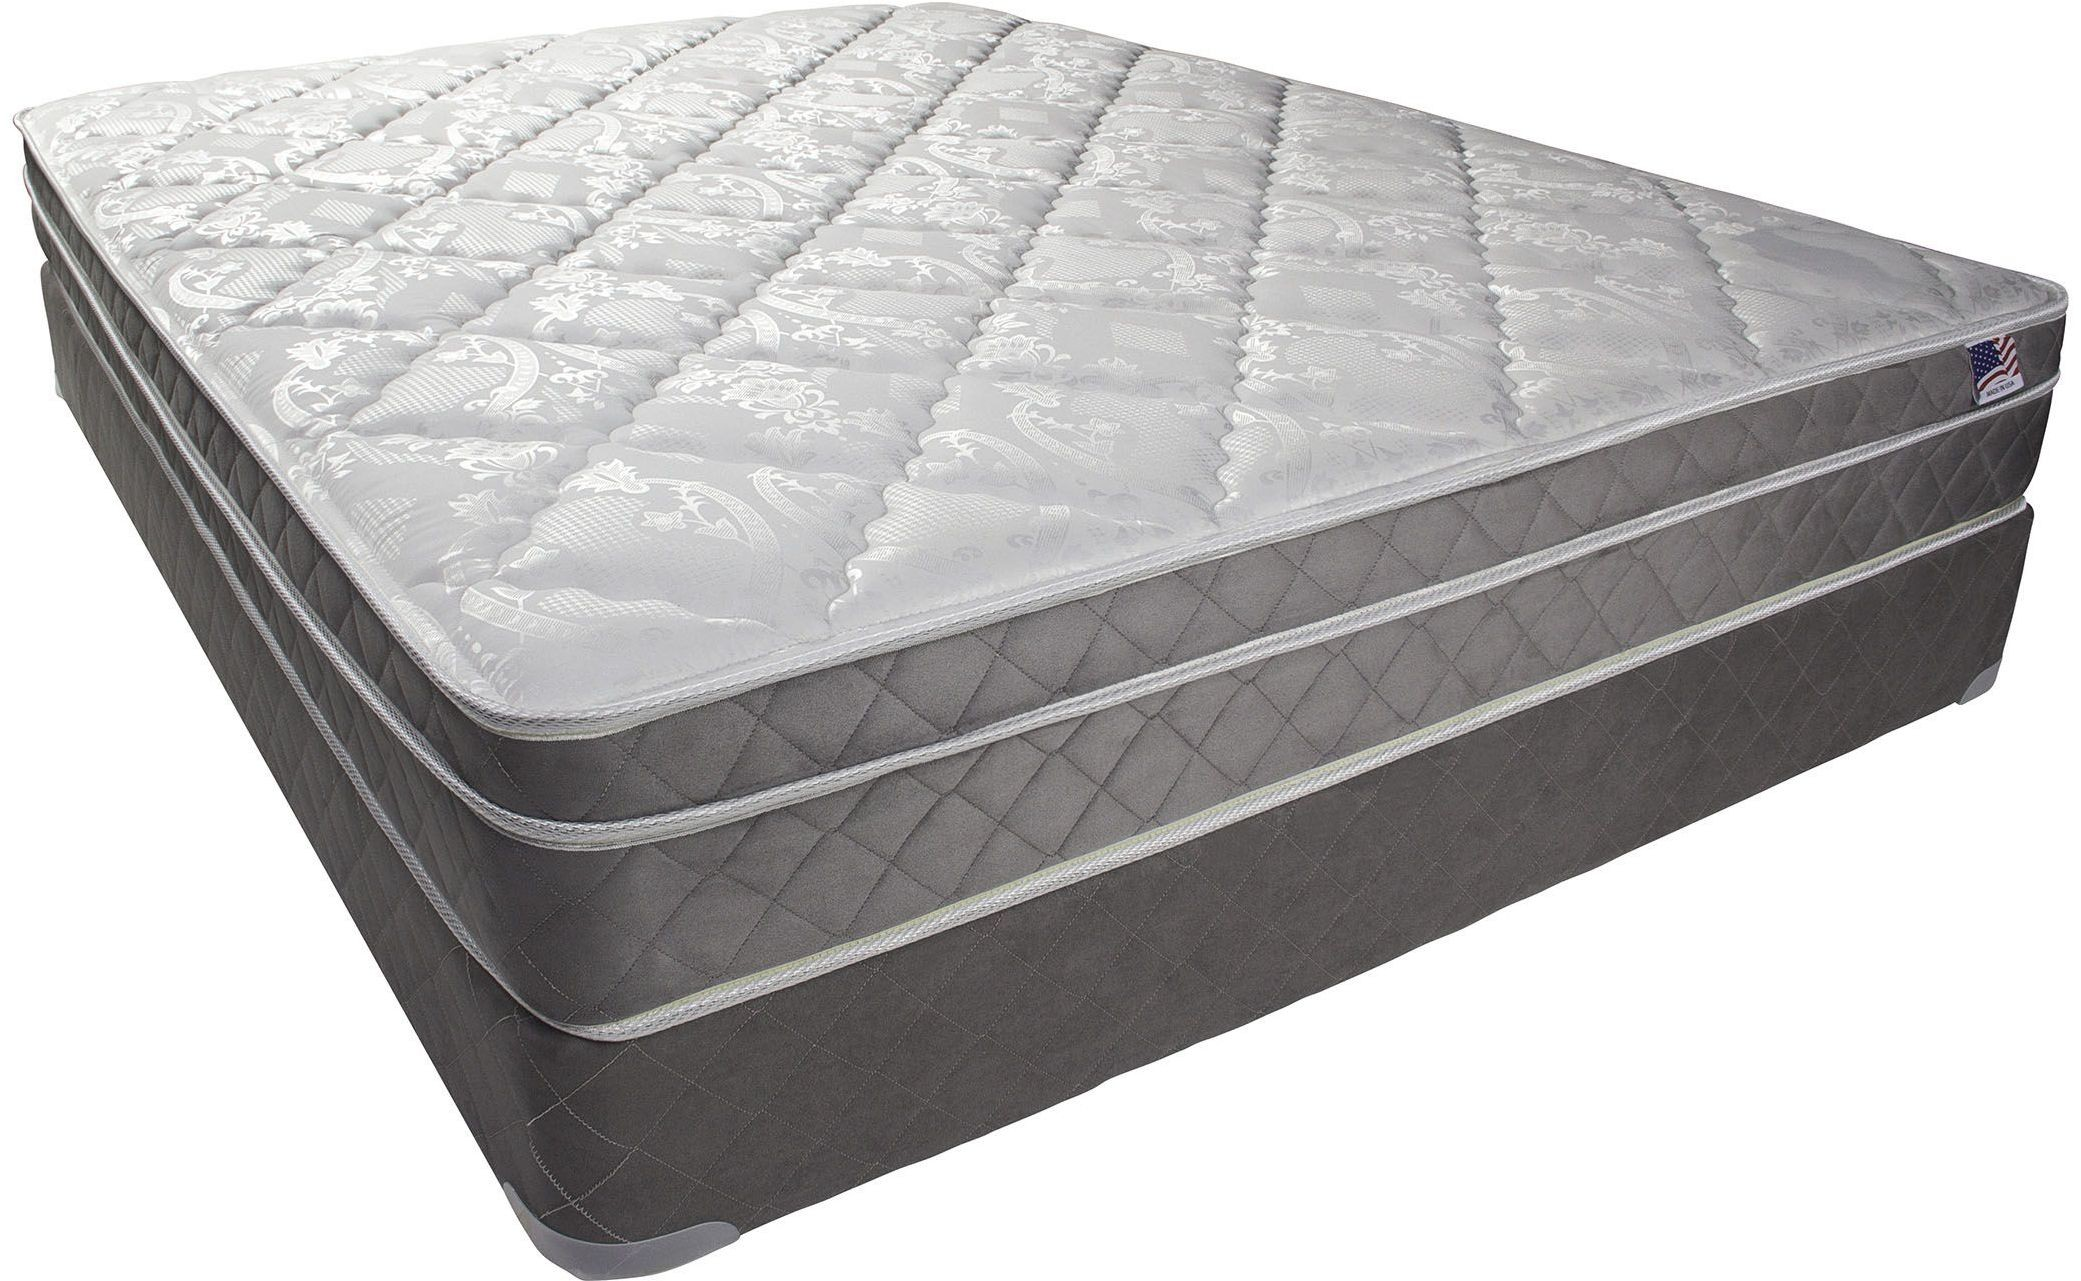 Kalina 9 Euro Pillow Top Queen Mattress Dm121q M Furniture Of America